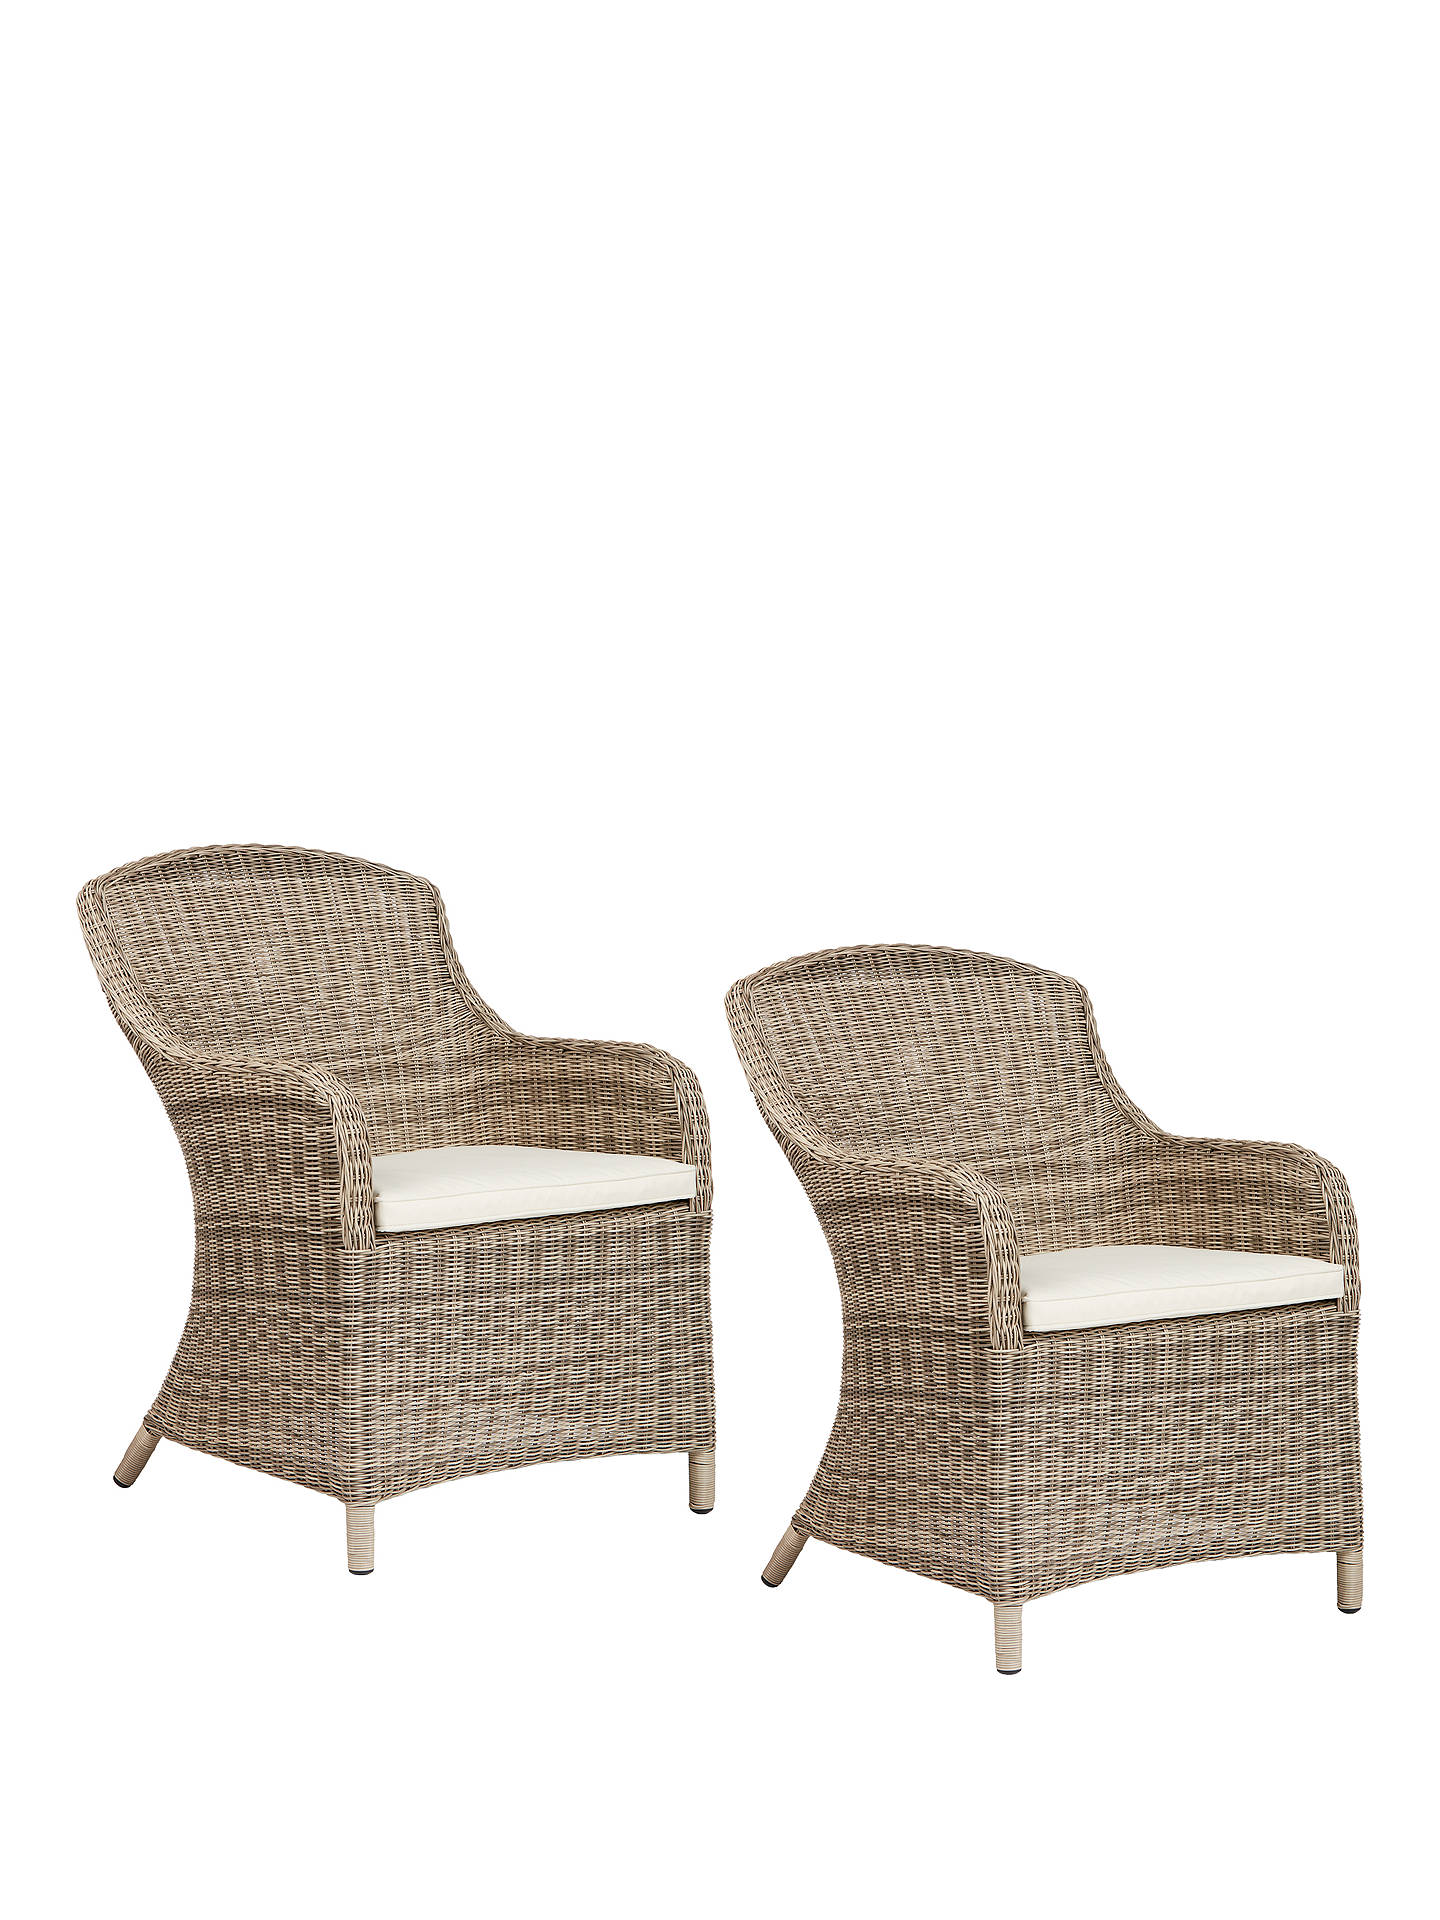 BuyJohn Lewis & Partners Dante Deluxe Outdoor Dining Armchair, Set of 2, Natural Online at johnlewis.com